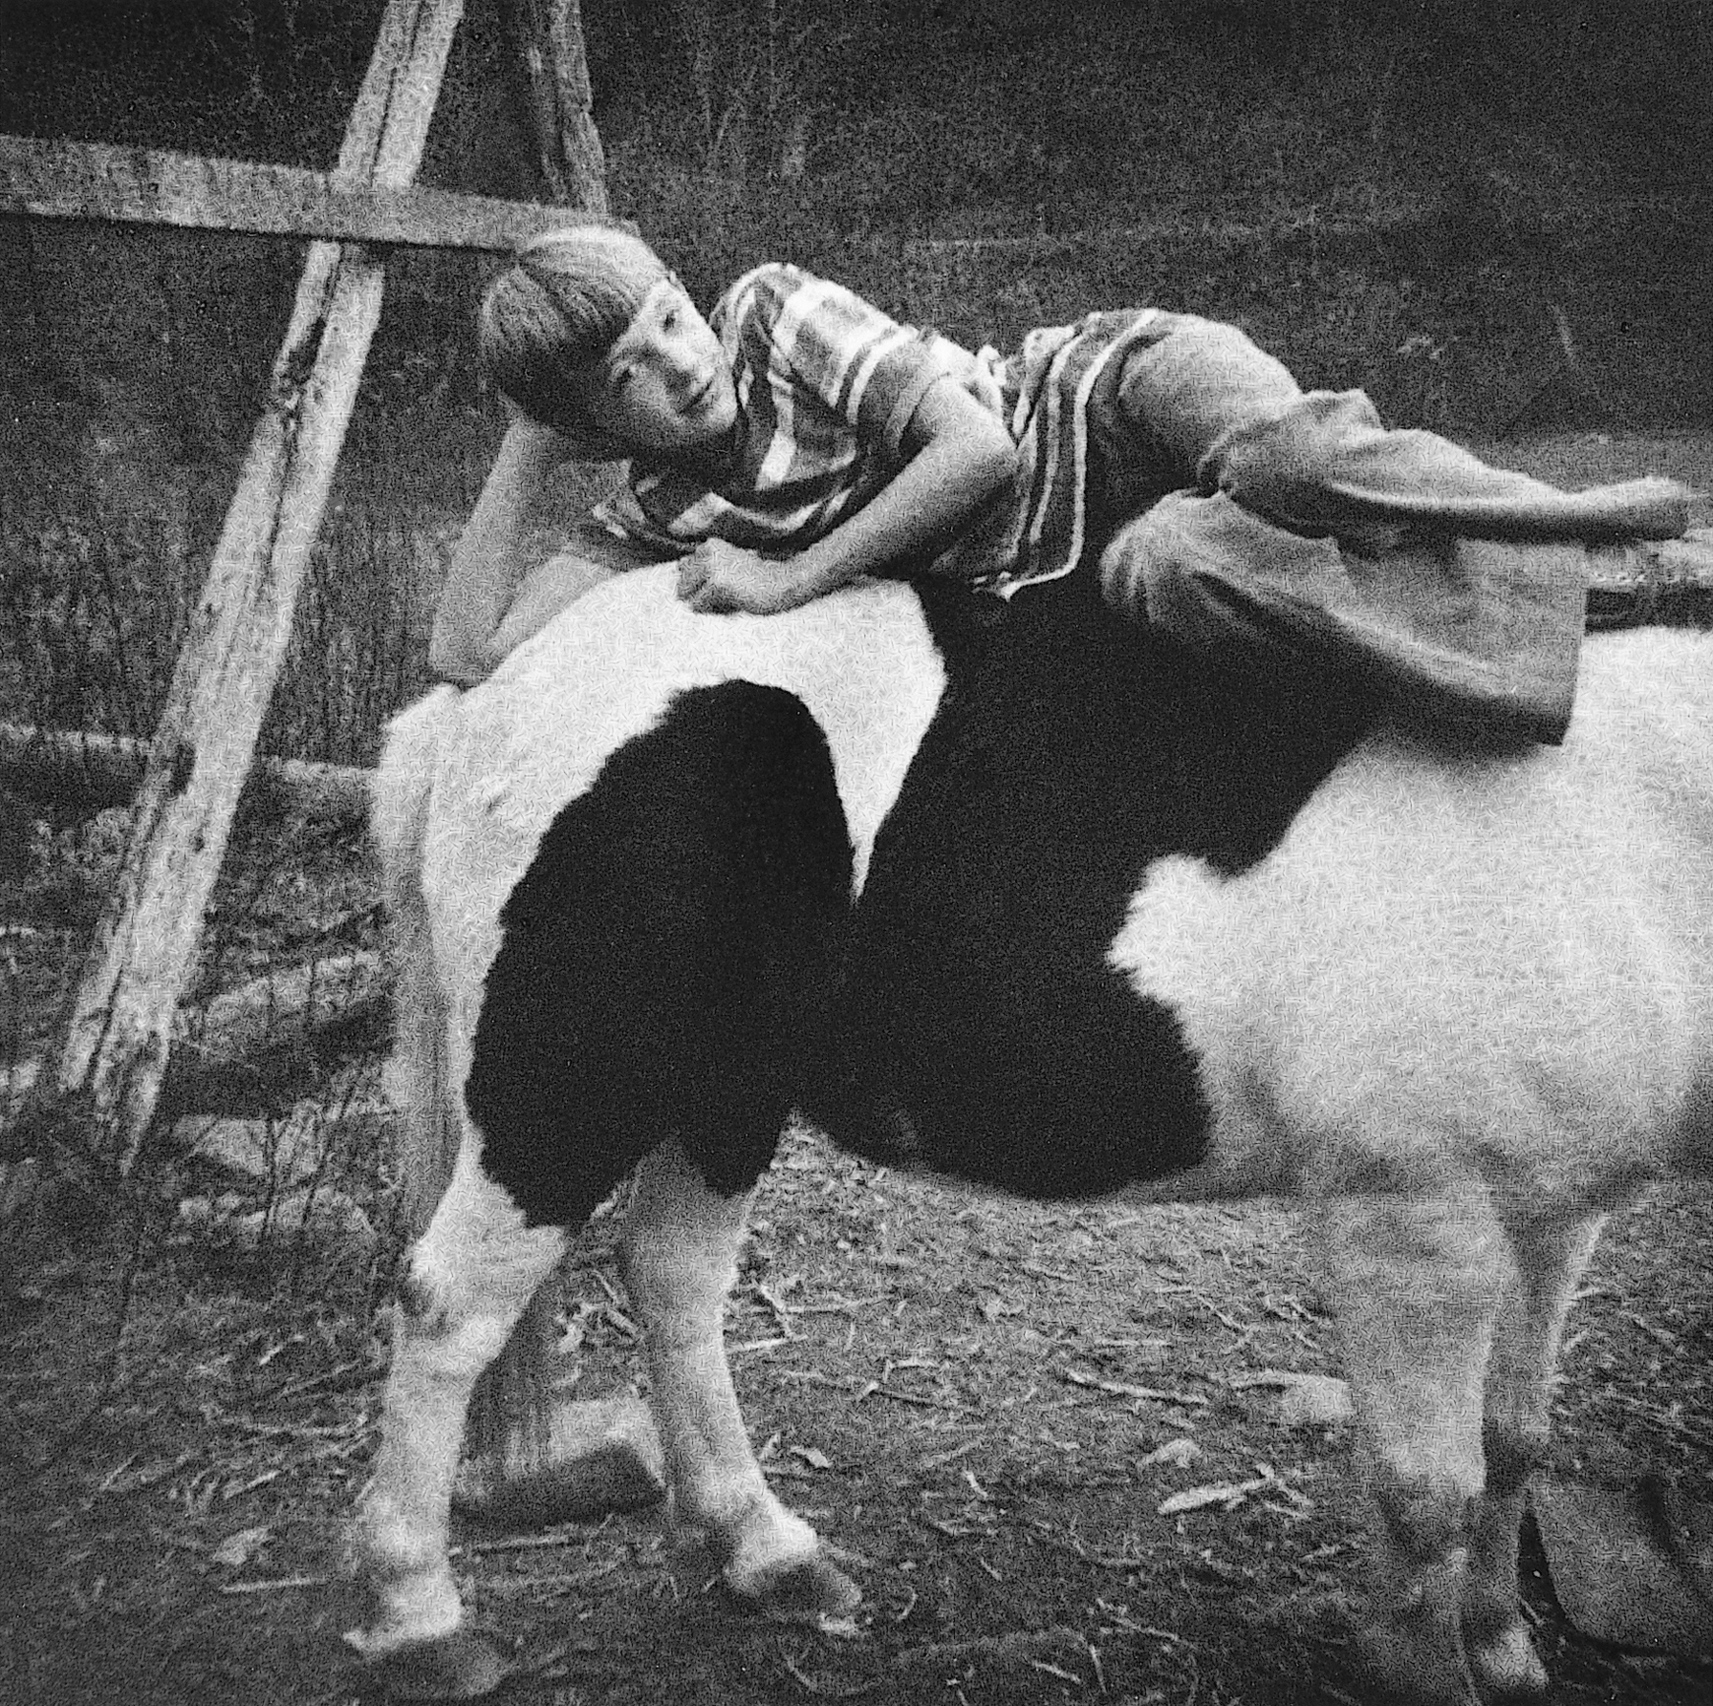 """©Wendy Ewald Courtesy Steven Kasher Gallery, New York,""""I am lying on the back of my old horse"""" - Russell Akeman, Kentucky, 1980"""